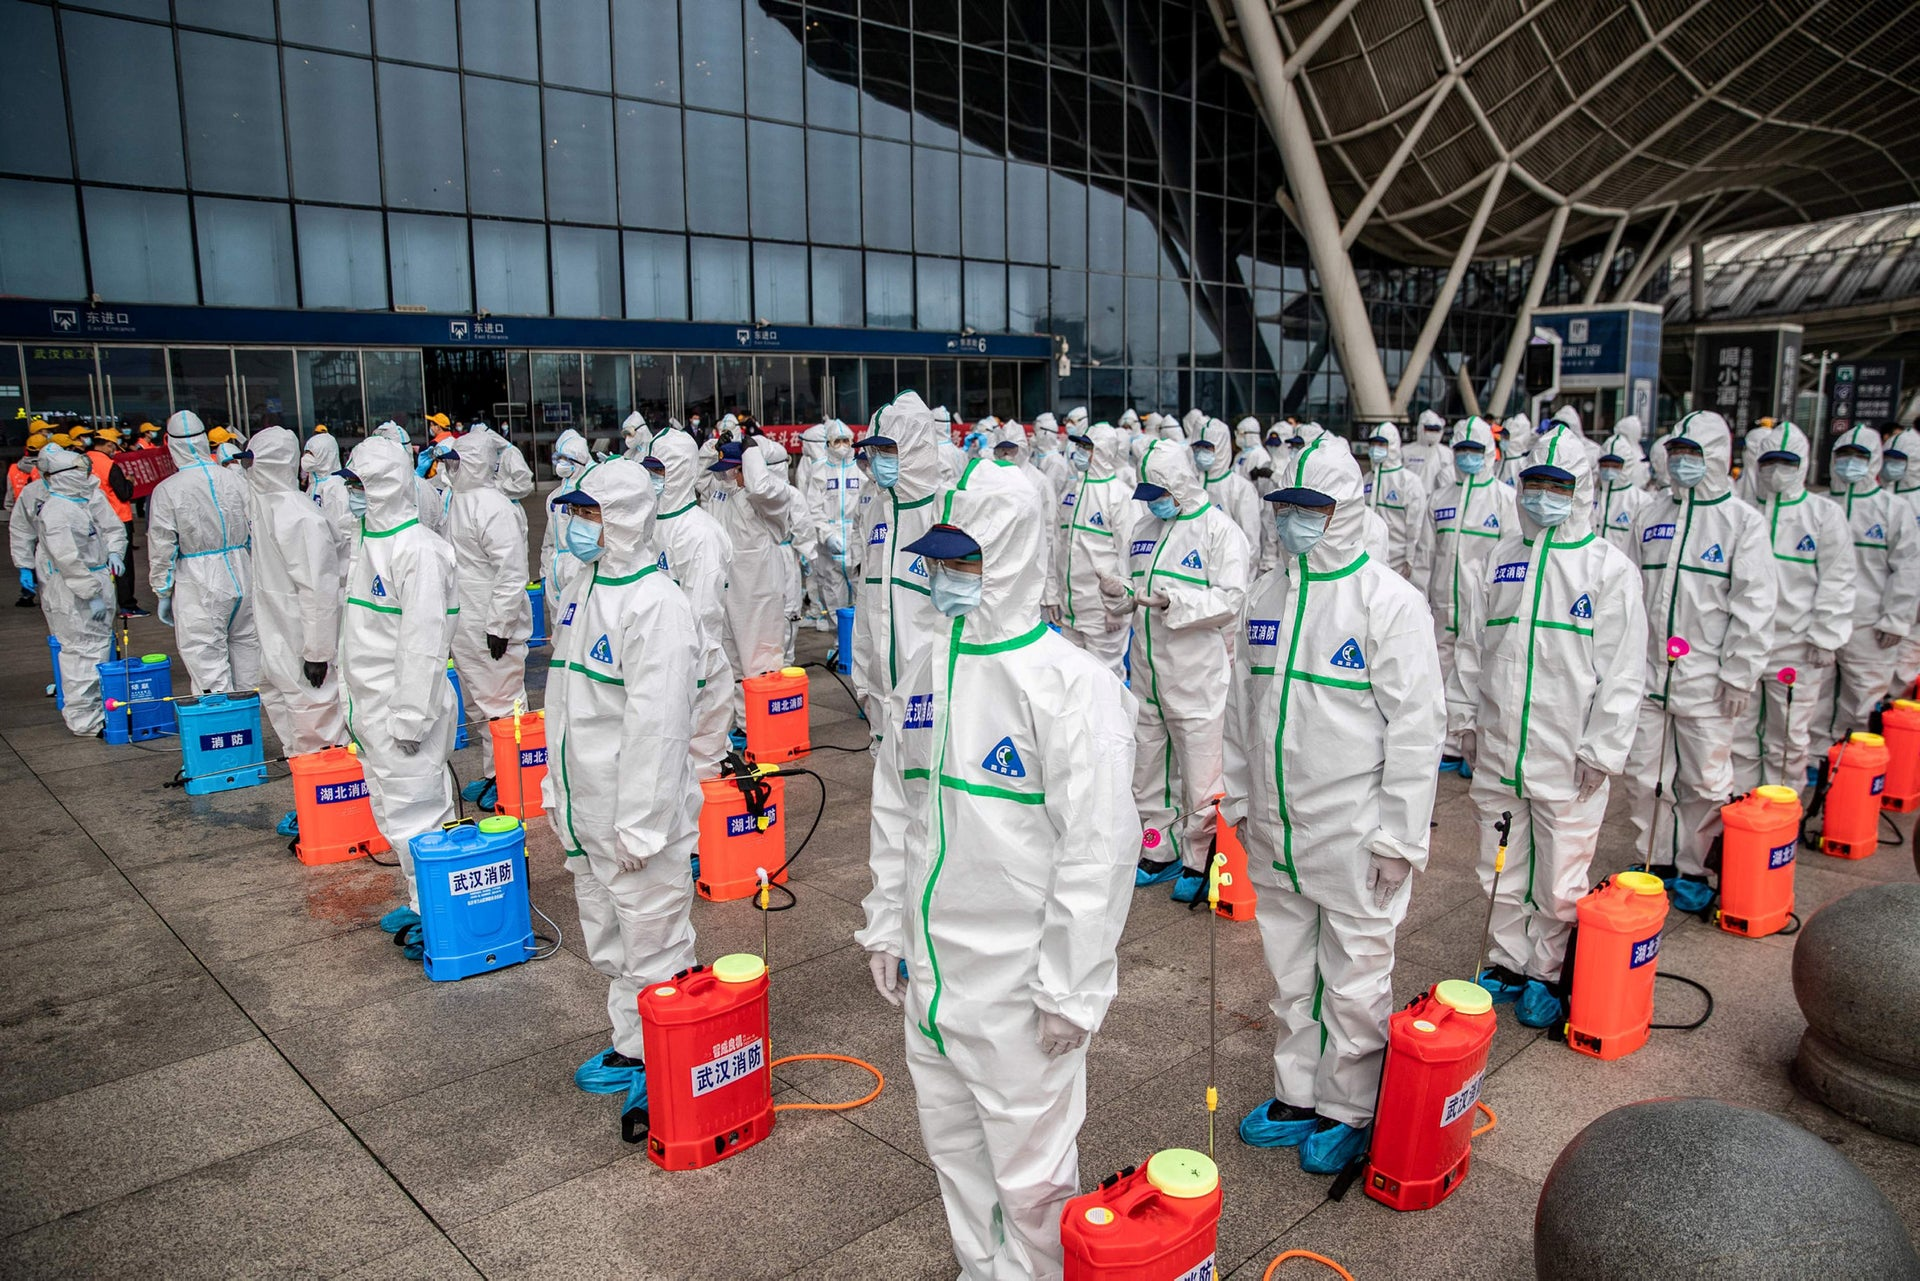 In this file photo staff members line up at attention as they prepare to spray disinfectant at Wuhan Railway Station in Wuhan in China's central Hubei province on March 24, 2020.